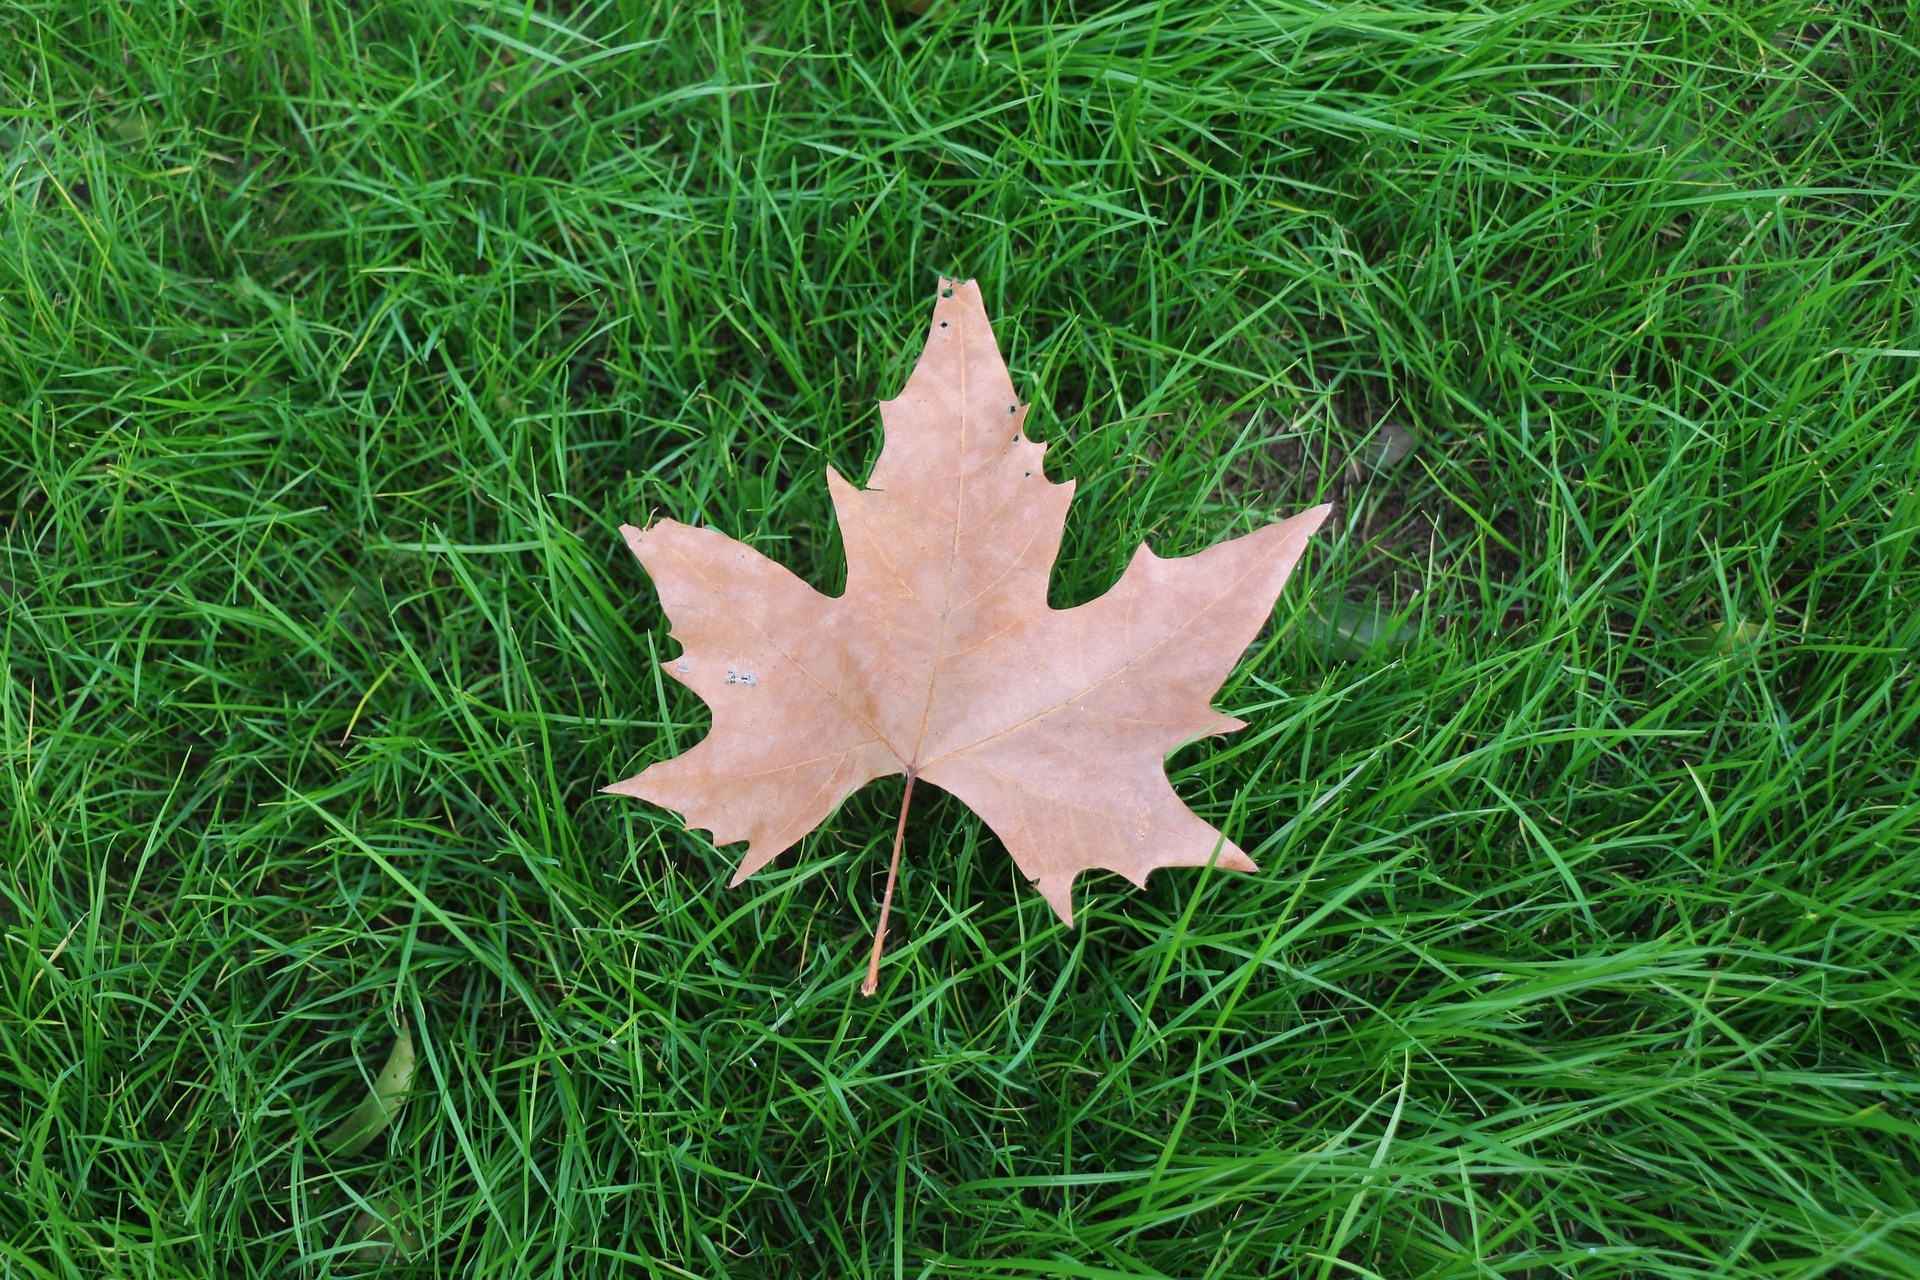 Grass and leaf picture